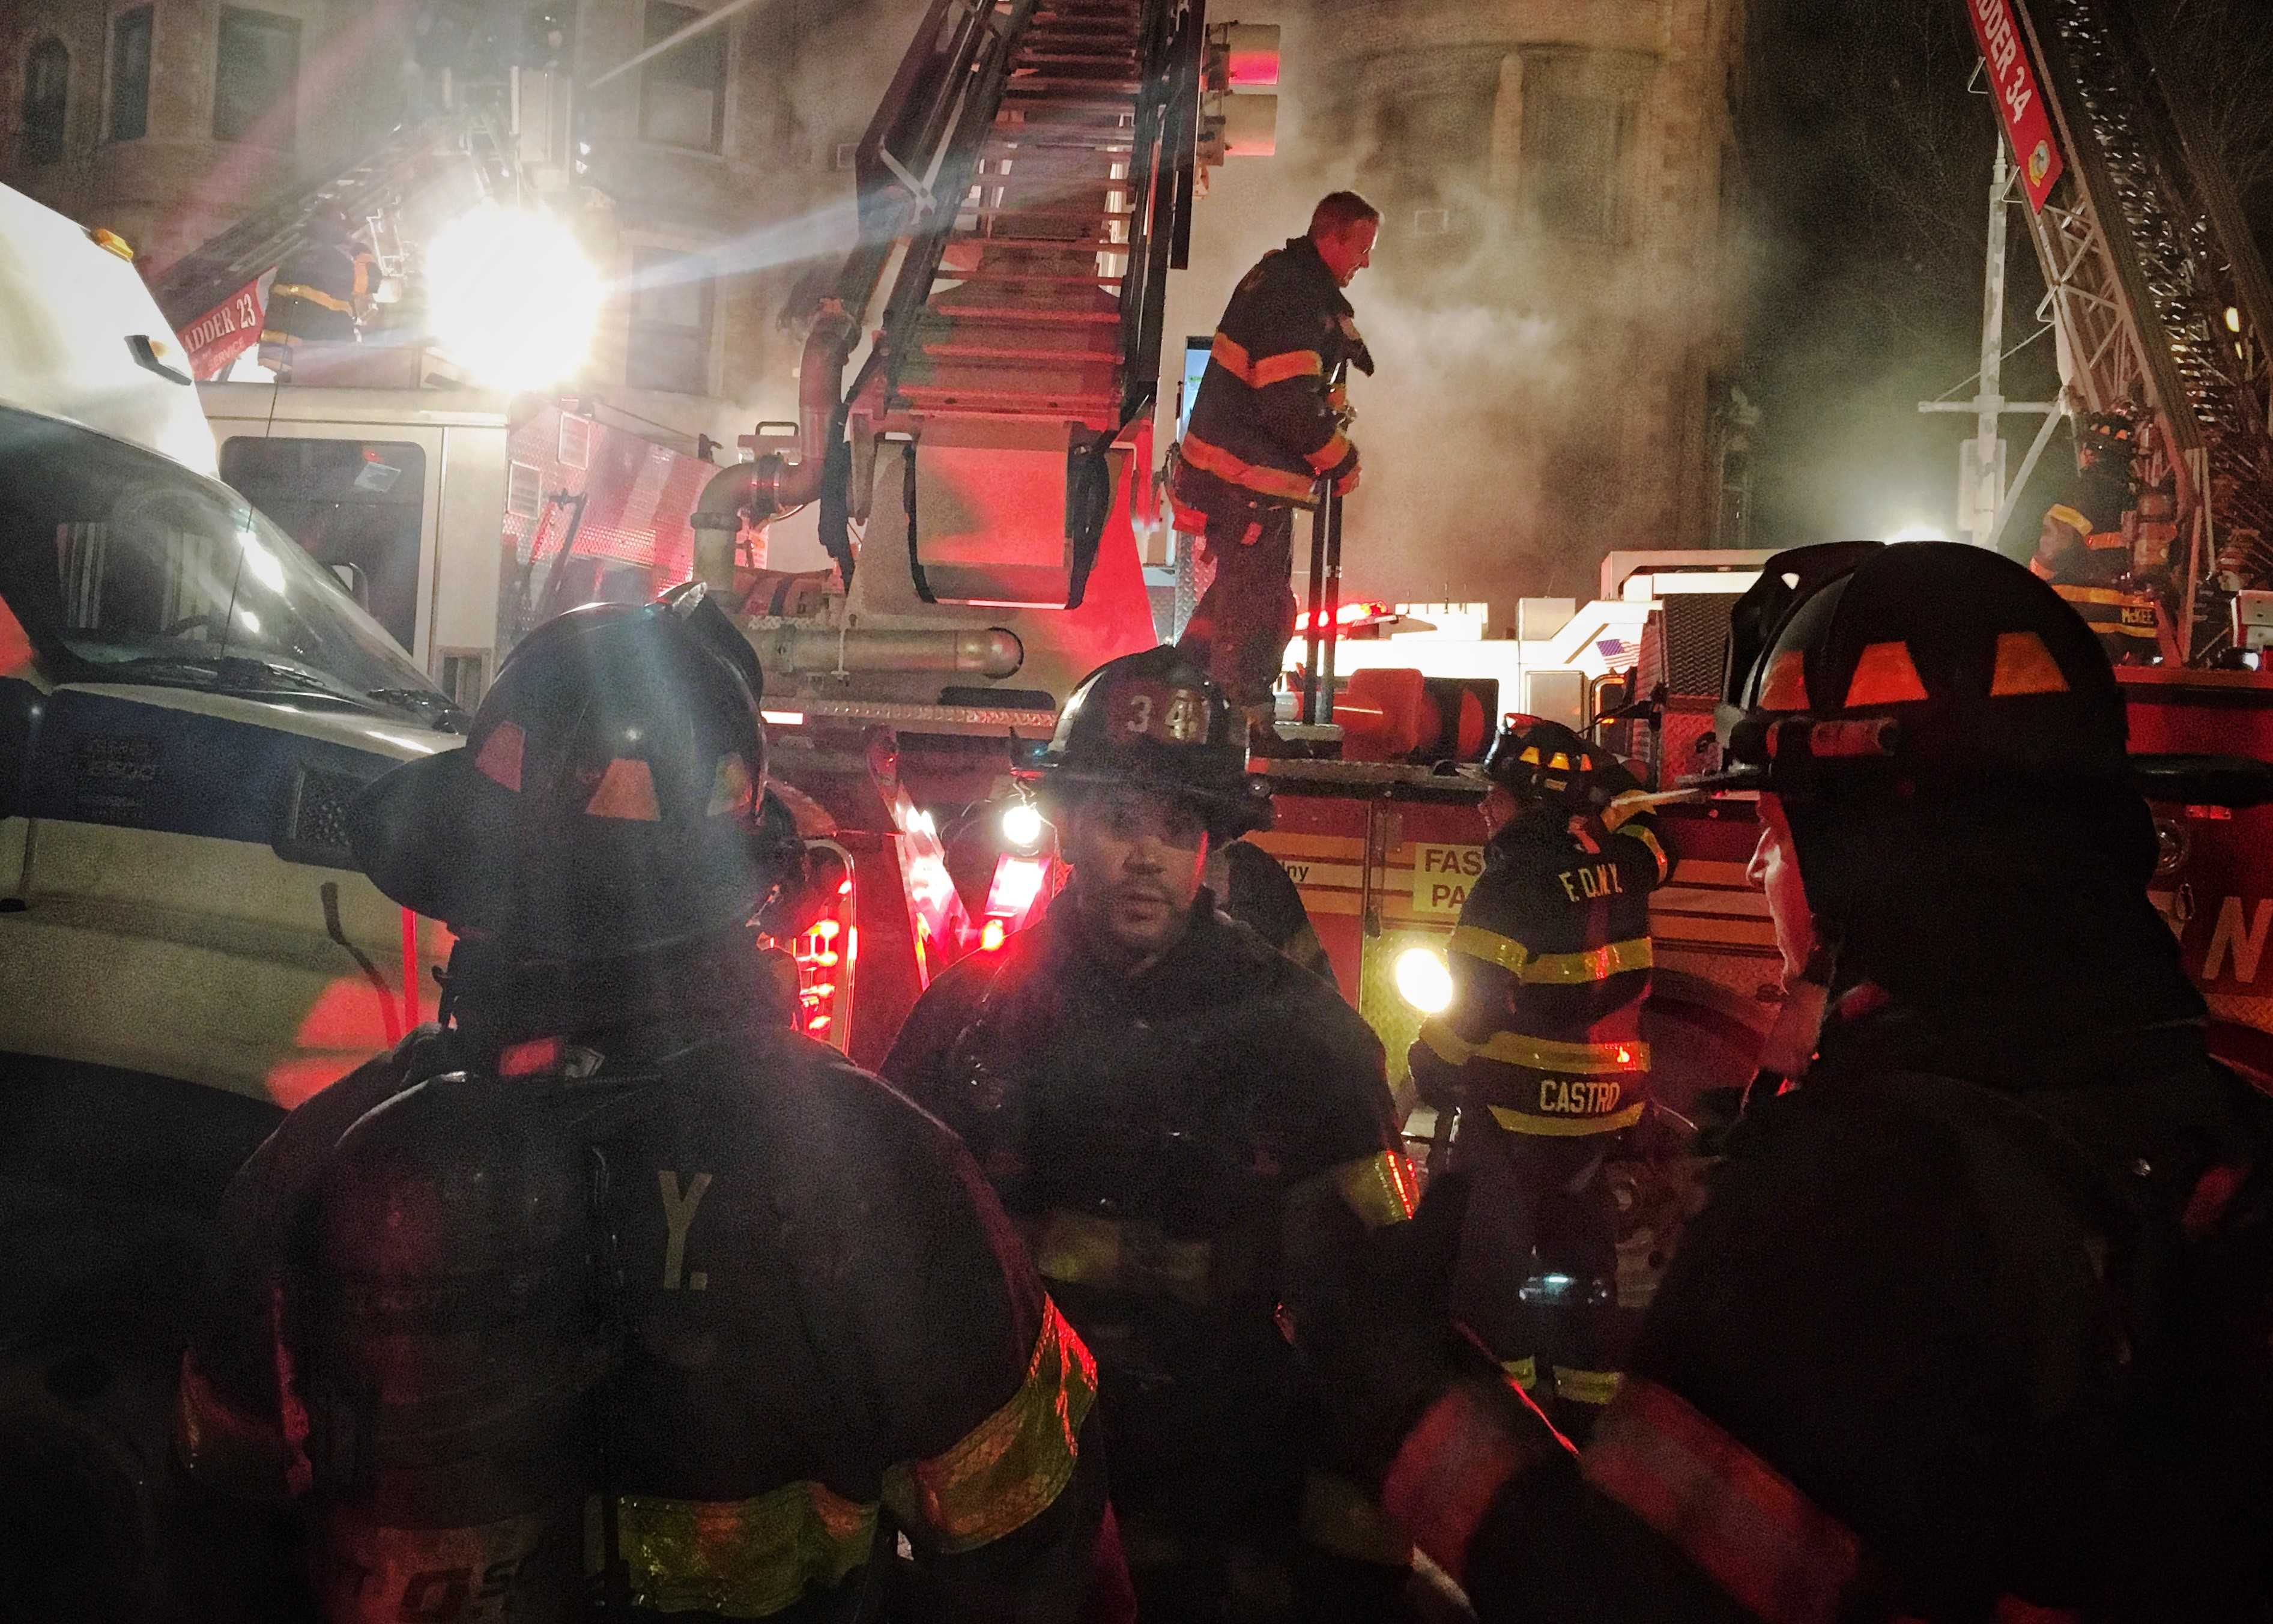 <div class='meta'><div class='origin-logo' data-origin='WABC'></div><span class='caption-text' data-credit=''>Photos from the scene of the fire in a building in Harlem where FDNY firefighter Michael Davidson was killed on Thursday, March 22, 2018.   Photos courtesy Sion Fullana</span></div>